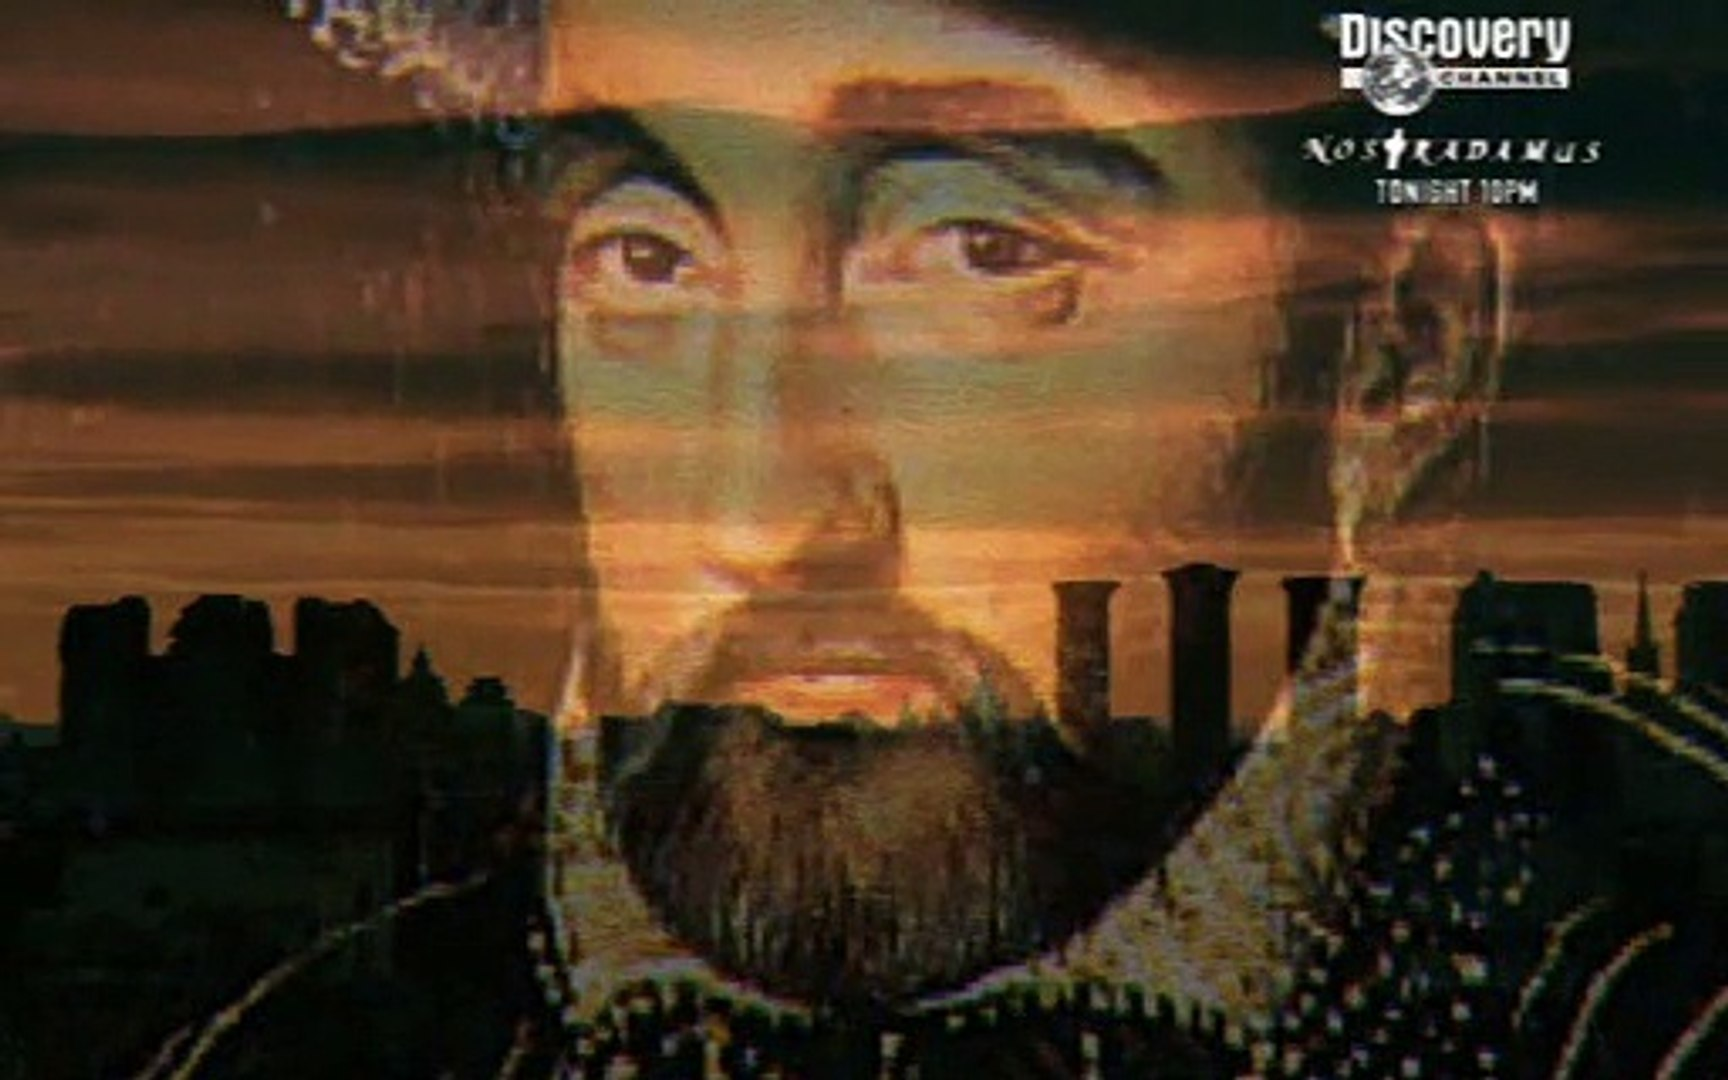 Discovery Channel Nostradamus-The Truth [Documentary